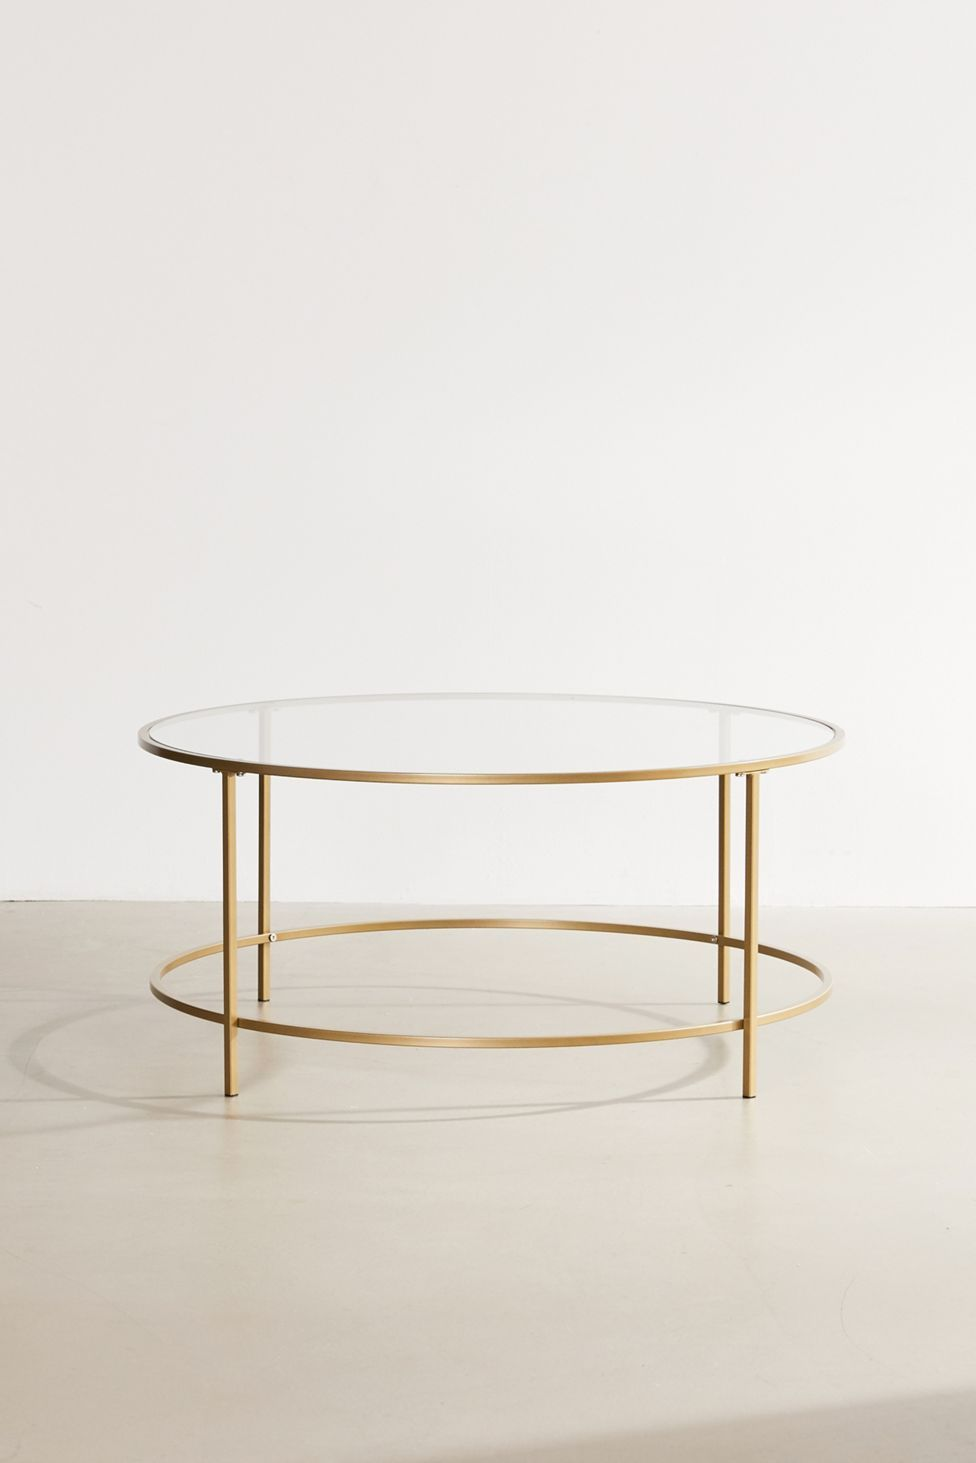 Delancey Storage Cabinet In 2021 Coffee Table Urban Outfitters Mirrored Coffee Tables Glass Gold Table [ 1463 x 976 Pixel ]